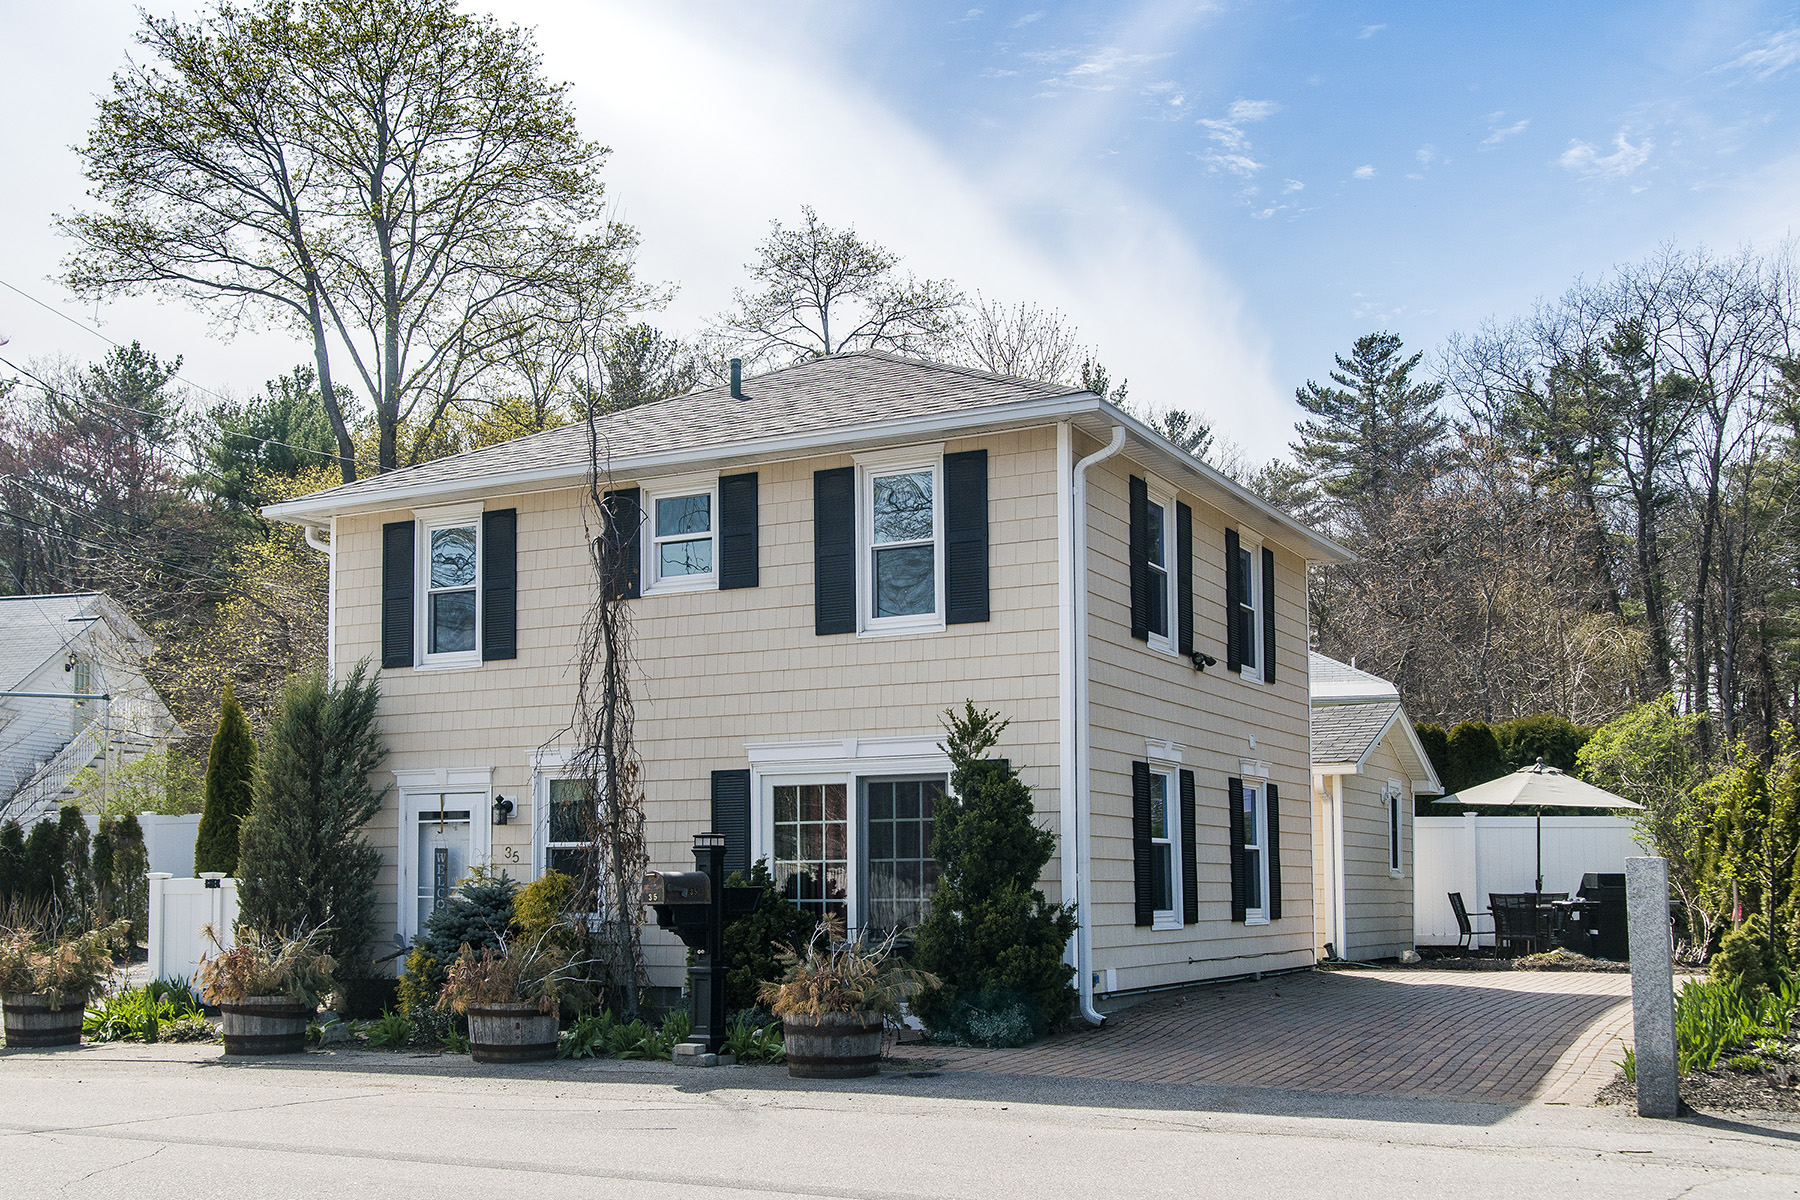 Single Family Home for Sale at 35 Kings Lane Ogunquit, Maine, 03907 United States